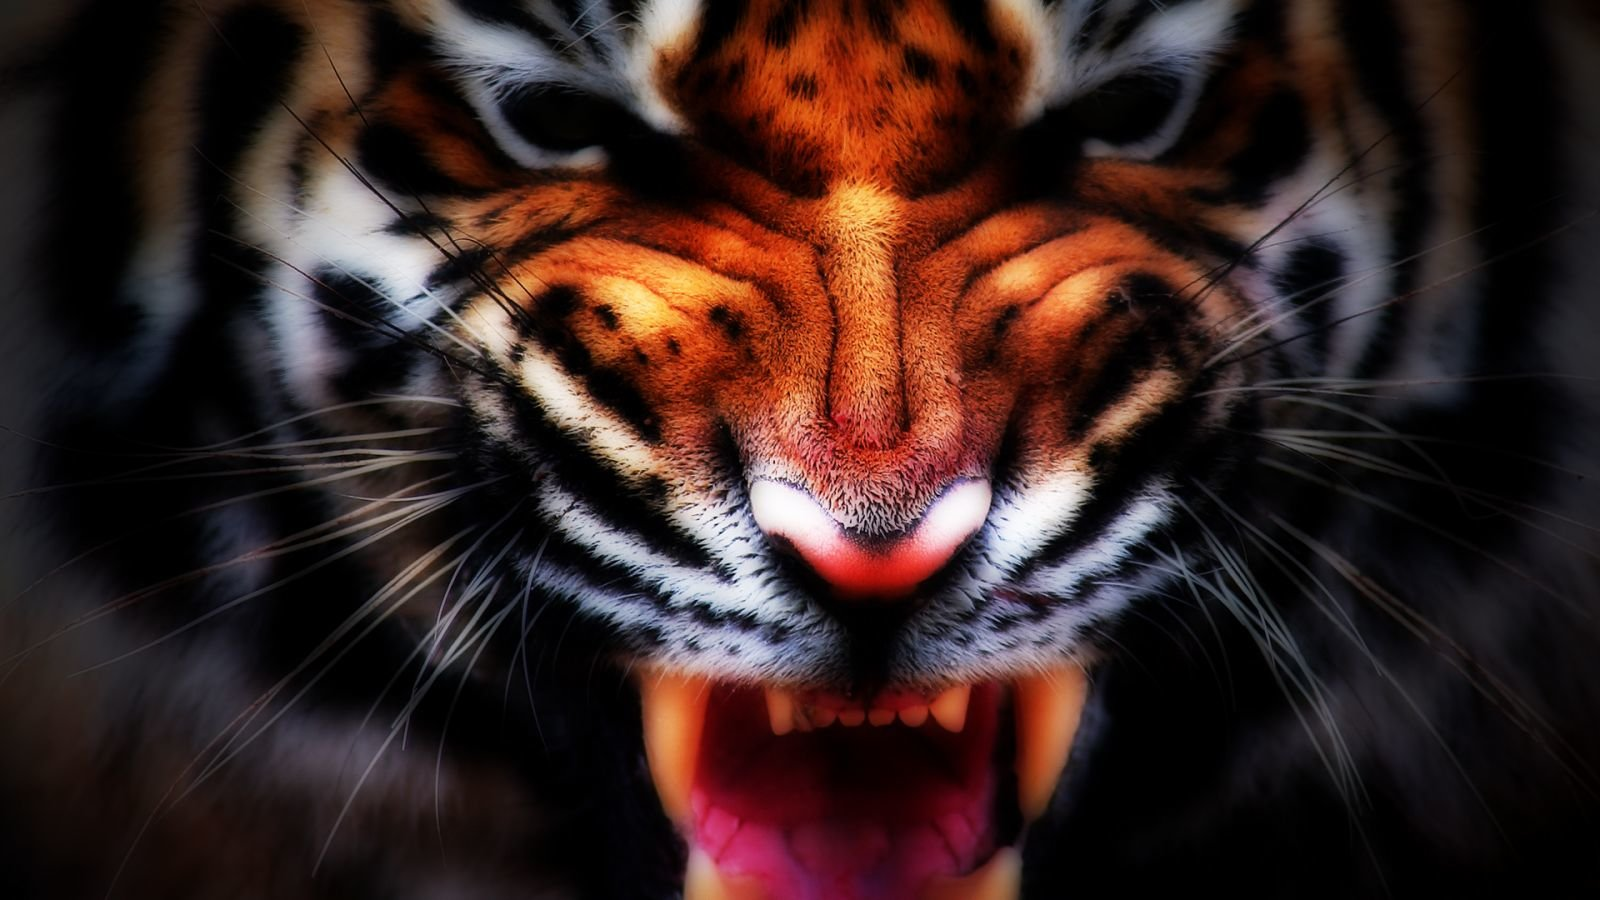 Download hd 1600x900 Tiger desktop background ID:115912 for free